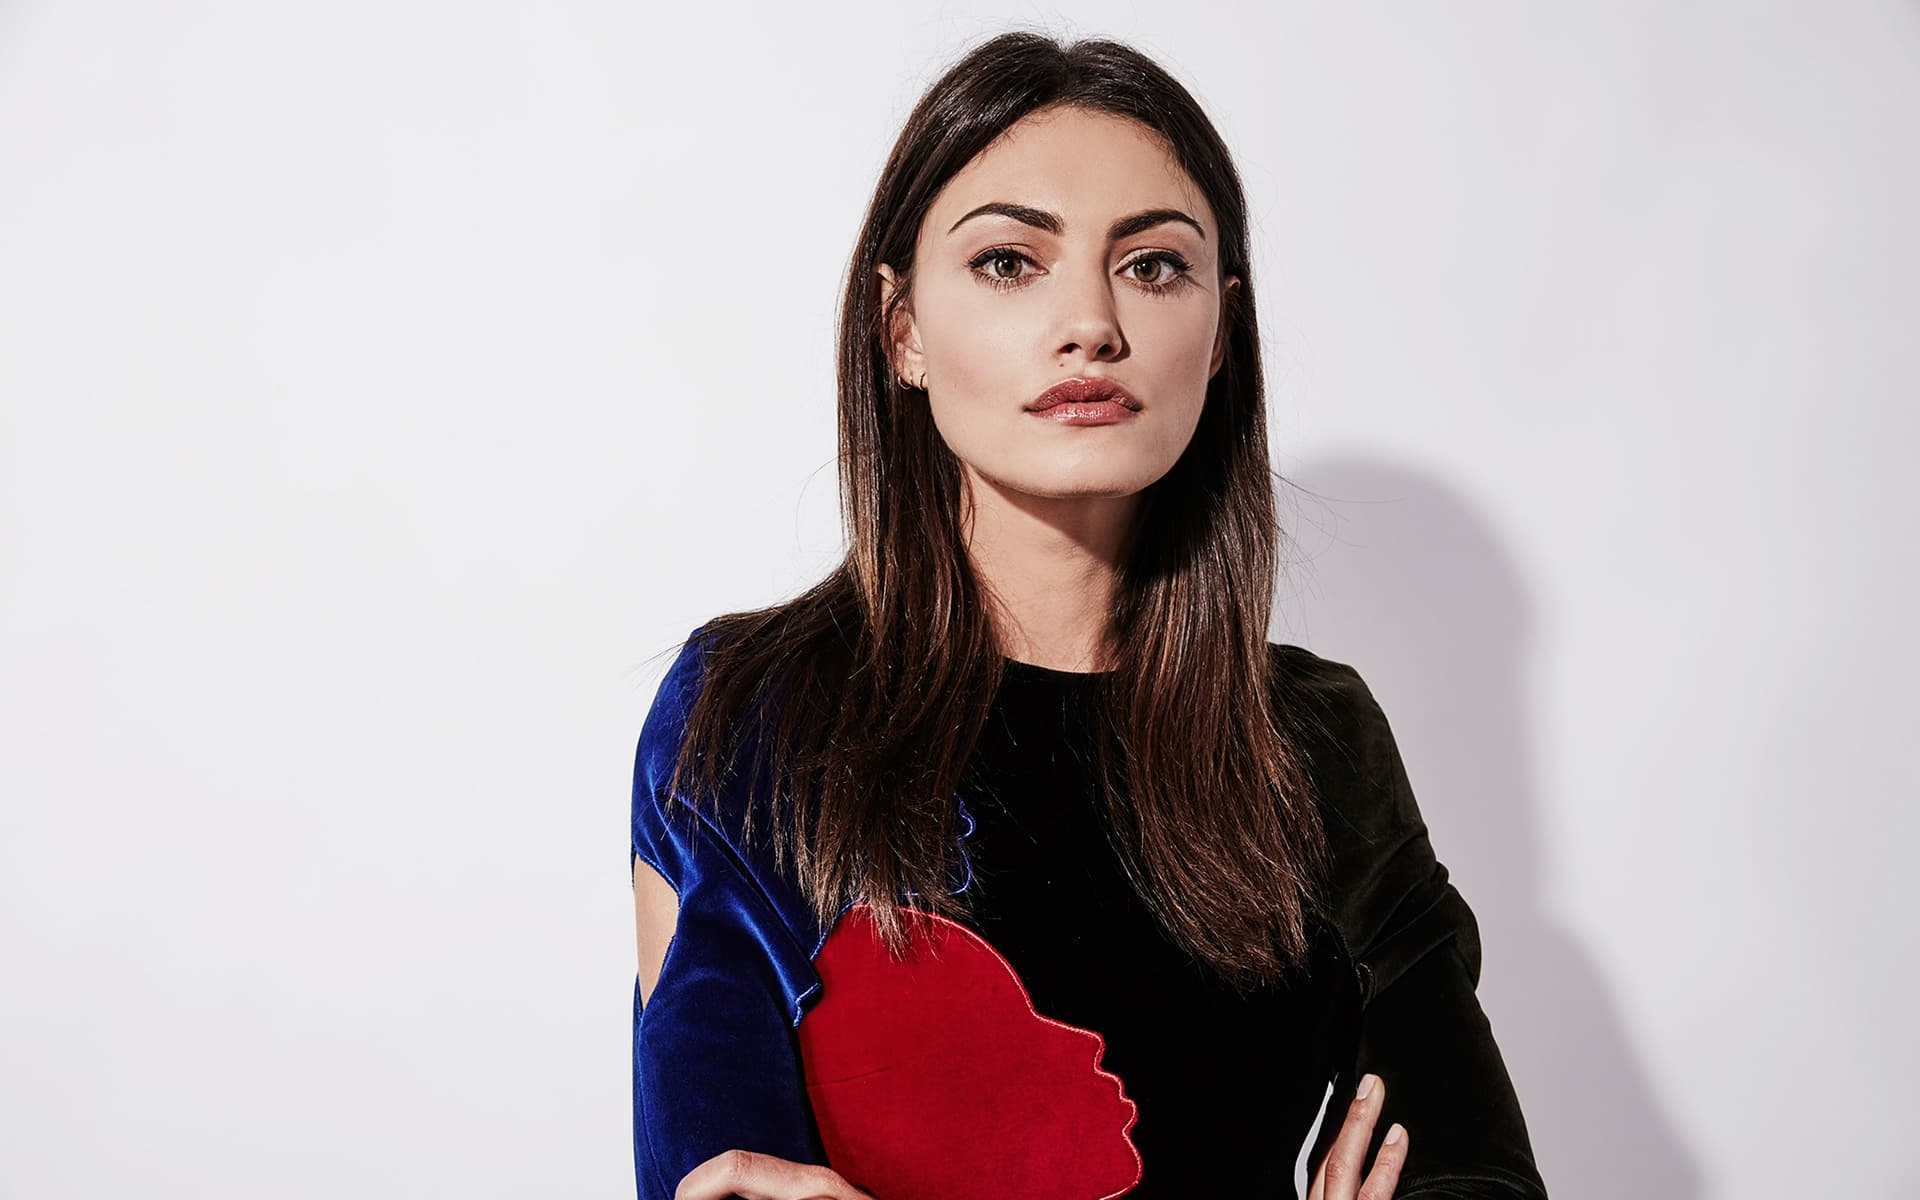 Download Wallpapers Cars Bikes 20 Phoebe Tonkin Wallpapers High Quality Download